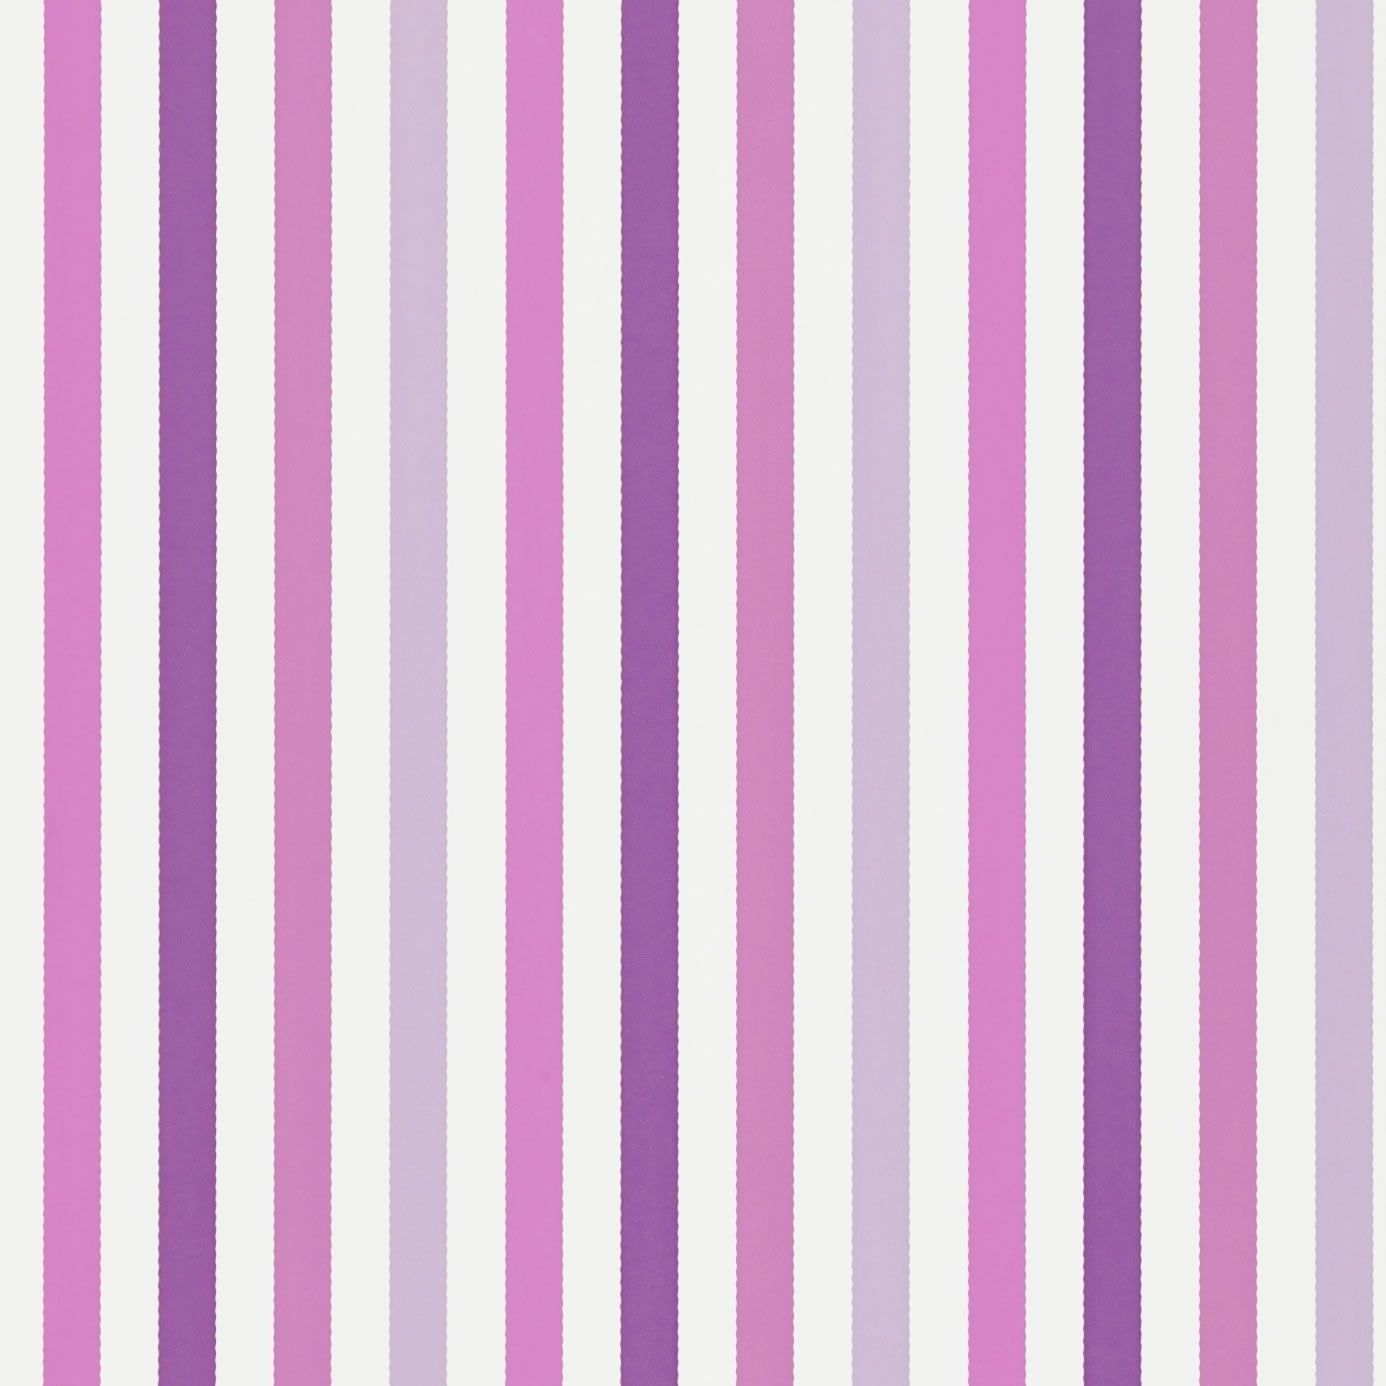 Similiar purple and pink striped wall keywords best games similiar purple and pink striped wall keywords junglespirit Image collections